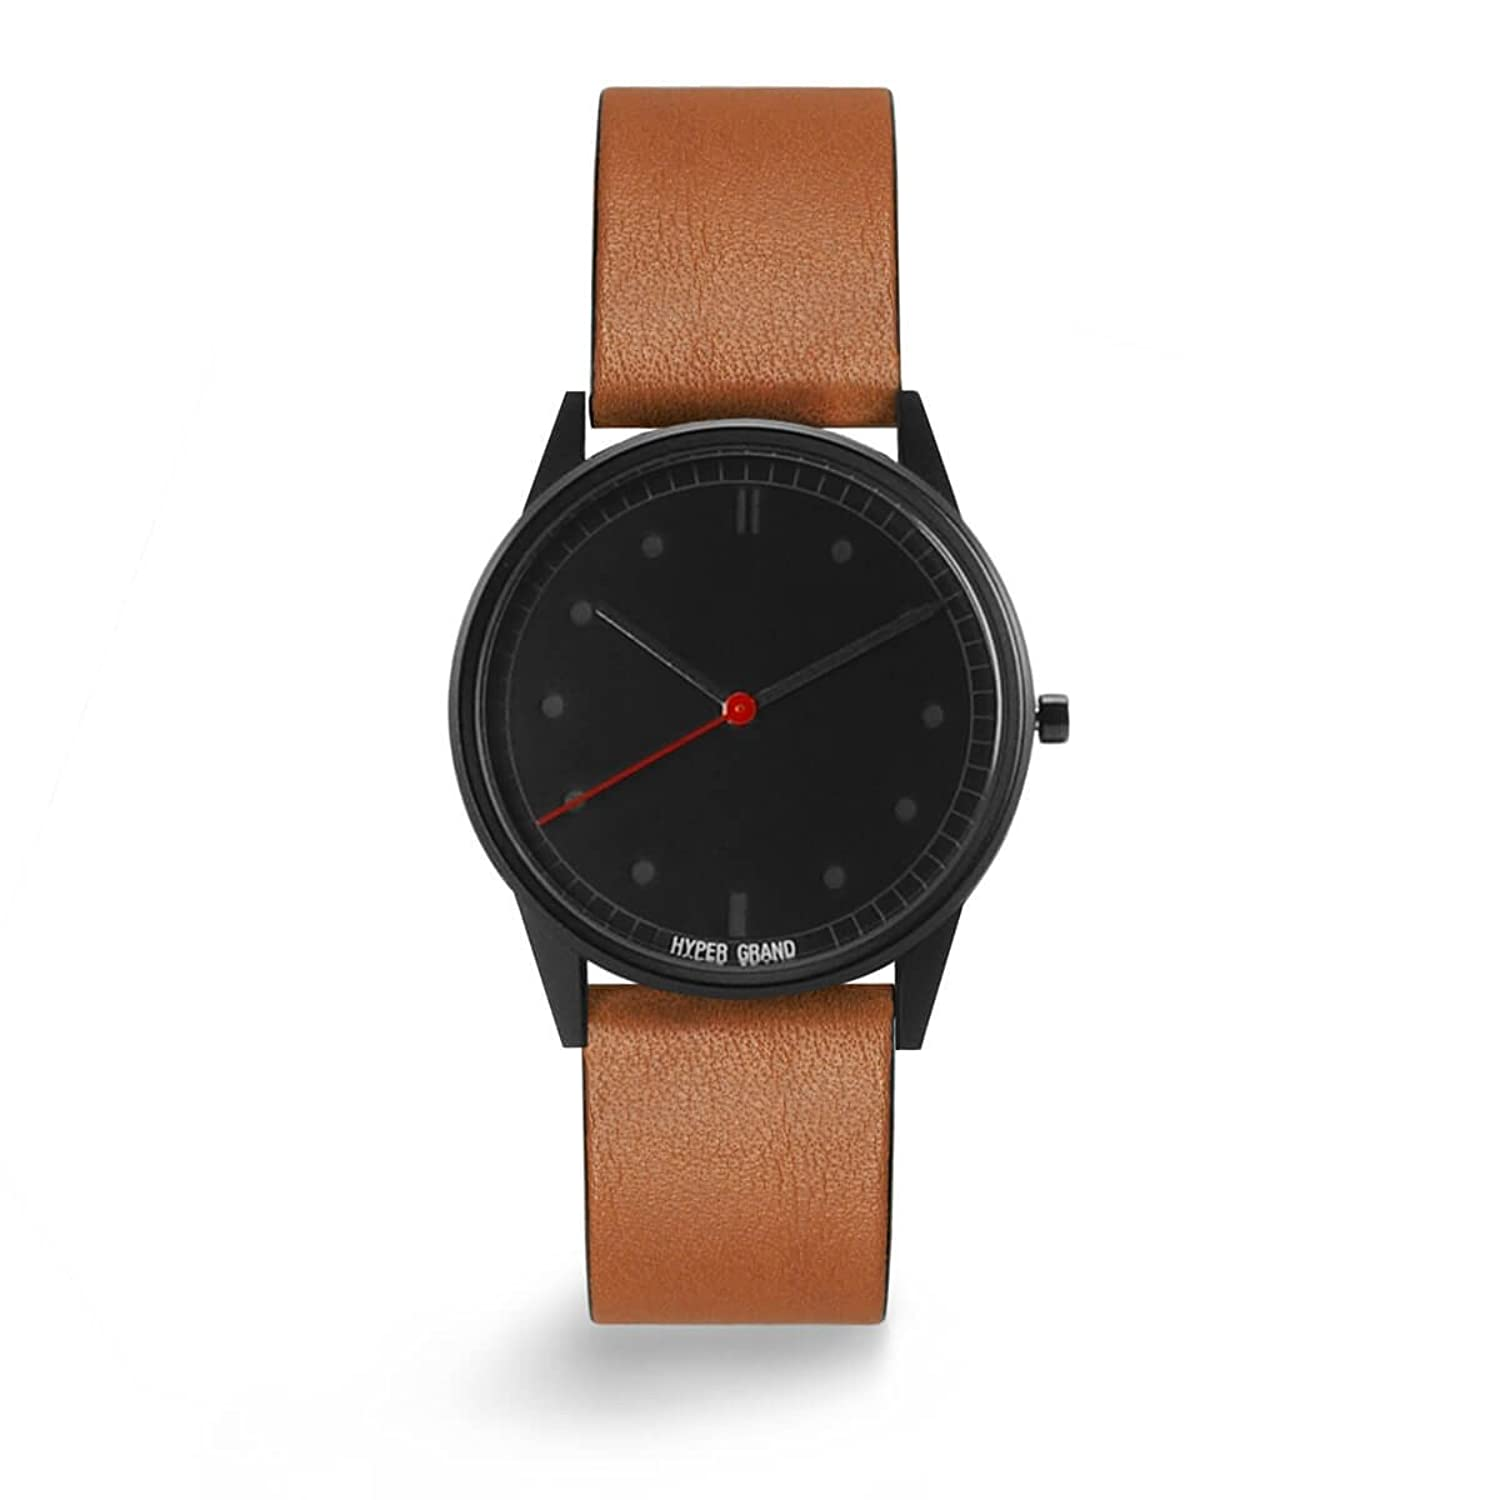 HYPERGRAND 01NATO Watch Blackout Classic Honey Leather schwarze Uhr mit Cognac Lederarmband